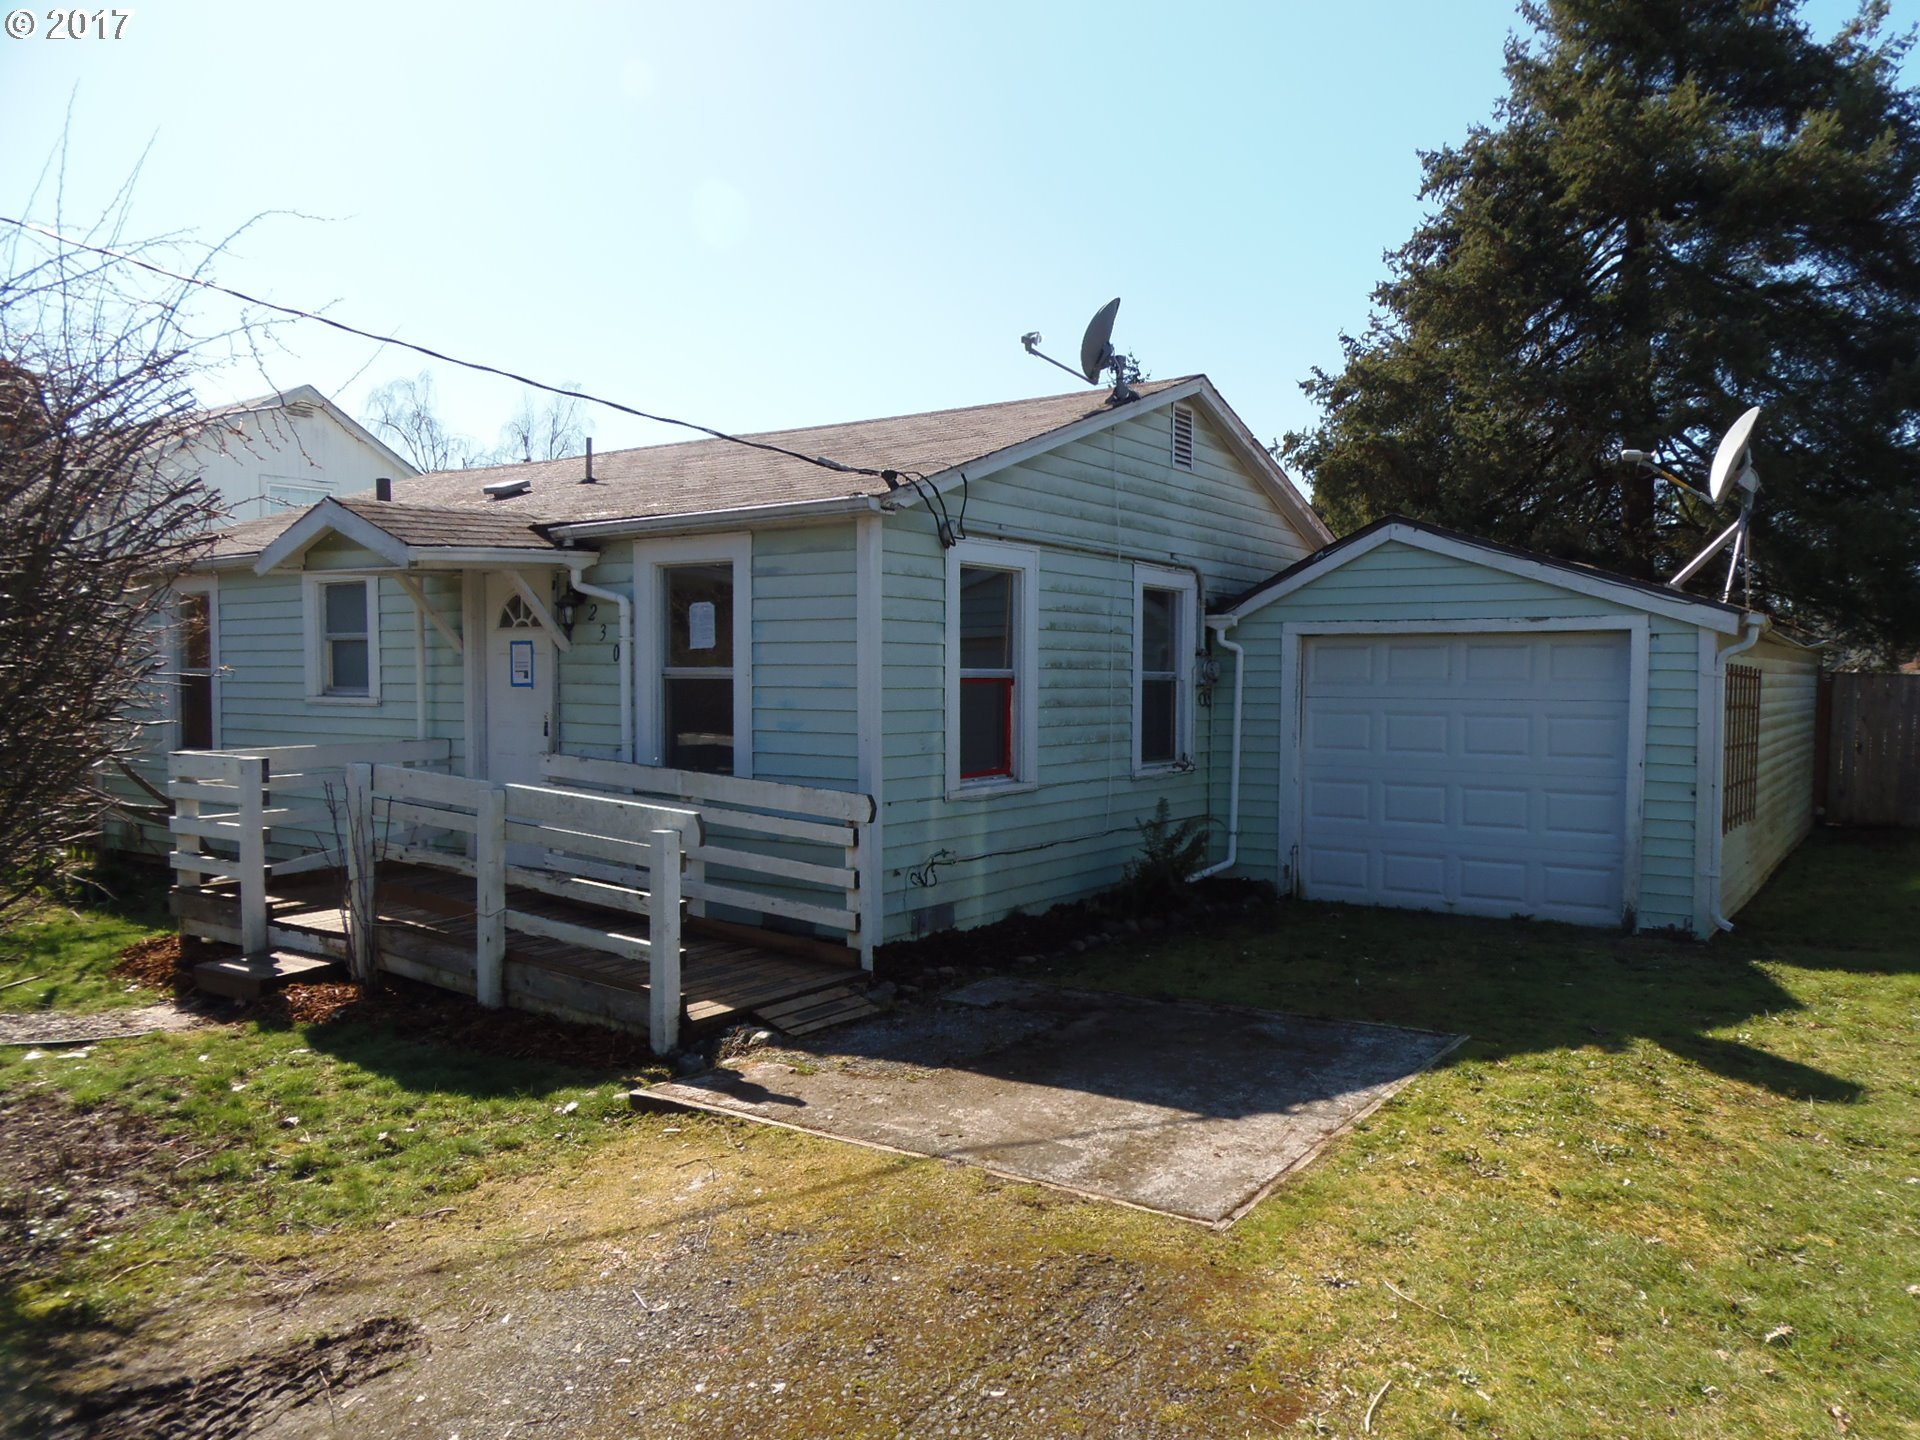 230 S 51ST PL, Springfield, OR 97478